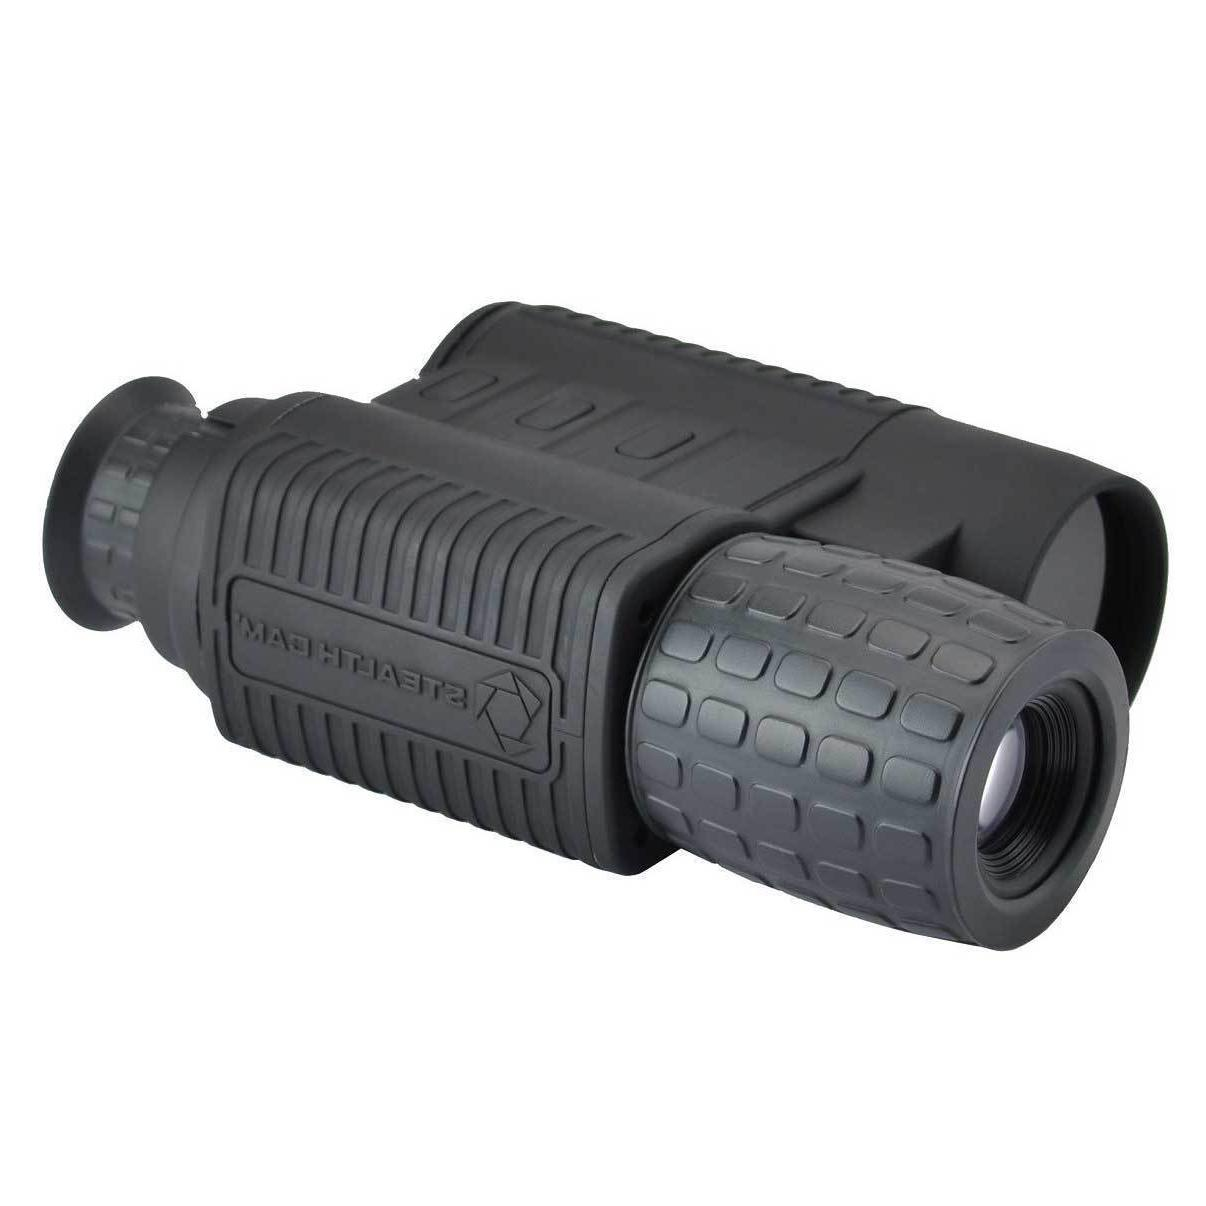 2606 Stealth Cam 9x Zoom Night Vision 400 Ft Sight Monocular